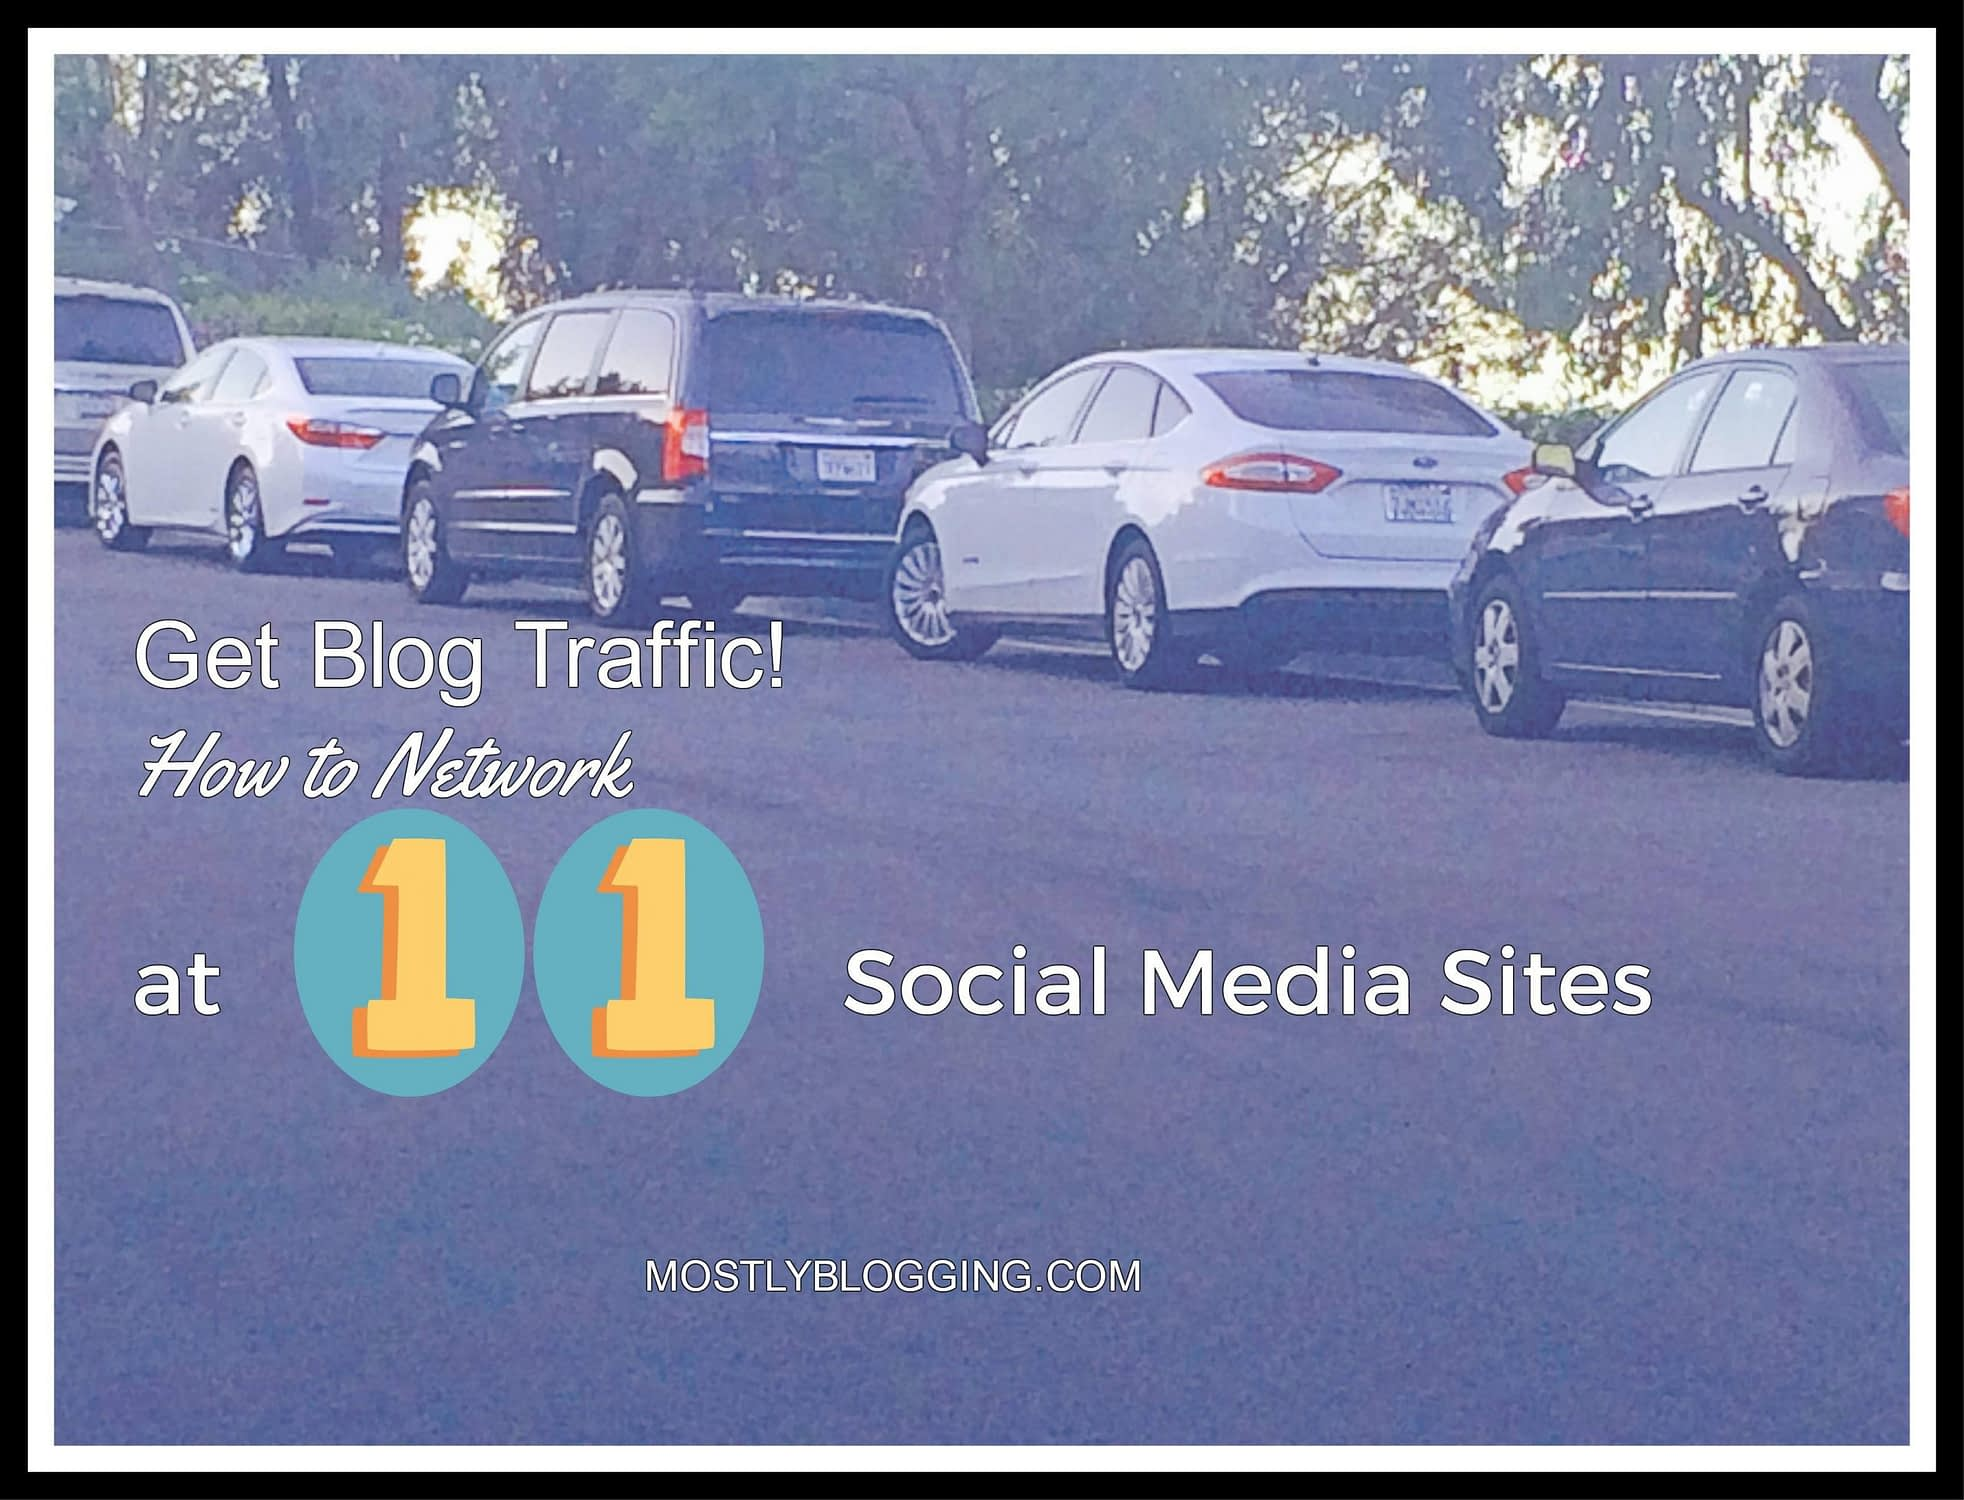 Get Blog Traffic at Social Media Sites